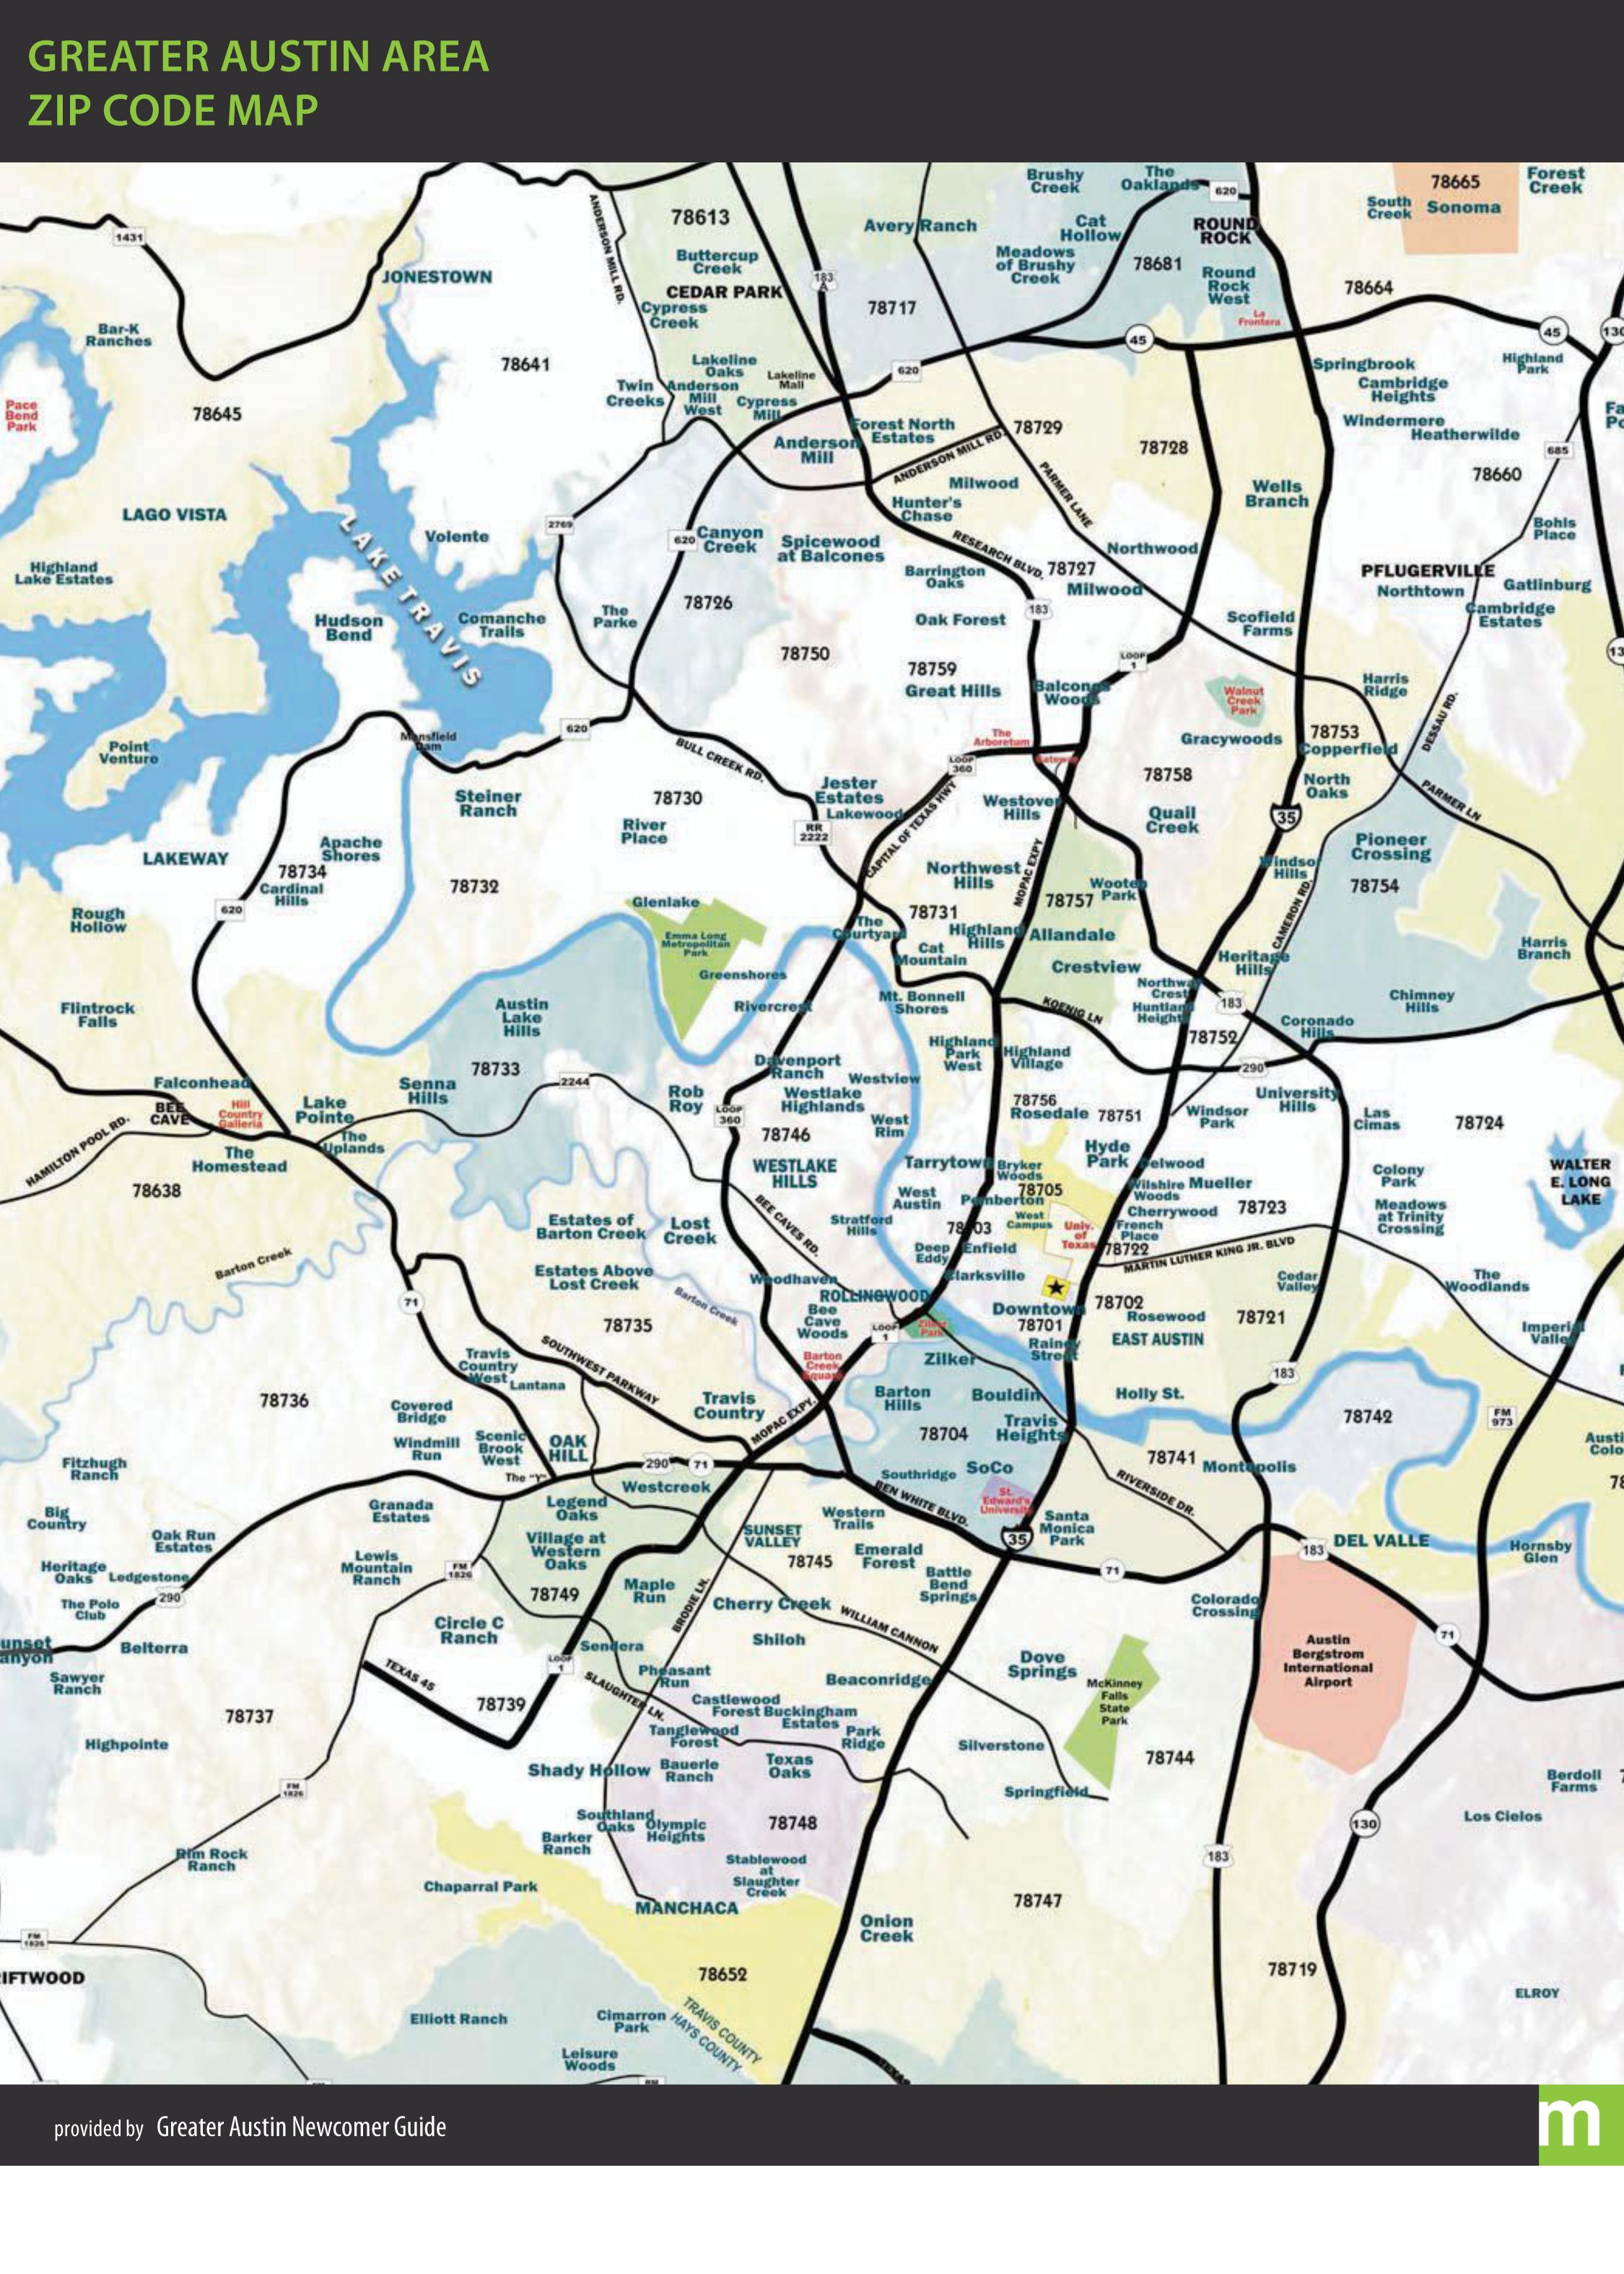 Austin Zip Codes Map Greater Austin Zip Code Map | MORE Maps in 2019 | Zip code map